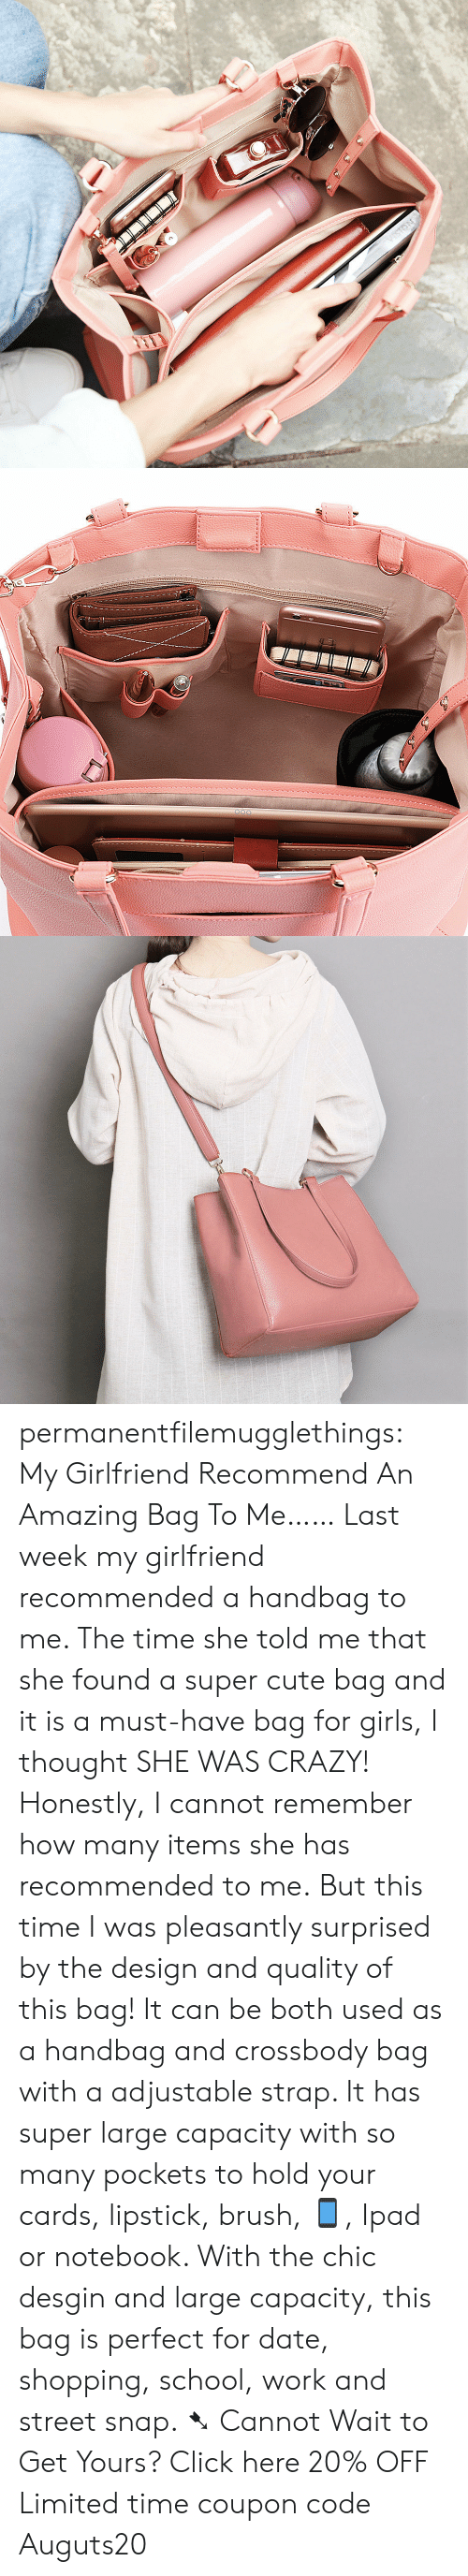 handbag: permanentfilemugglethings: My Girlfriend Recommend An Amazing Bag To Me…… Last week my girlfriend recommended a handbag to me. The time she told me that she found a super cute bag and it is a must-have bag for girls, I thought SHE WAS CRAZY! Honestly, I cannot remember how many items she has recommended to me. But this time I was pleasantly surprised by the design and quality of this bag! It can be both used as a handbag and crossbody bag with a adjustable strap. It has super large capacity with so many pockets to hold your cards, lipstick, brush, 📱, Ipad or notebook. With the chic desgin and large capacity, this bag is perfect for date, shopping, school, work and street snap. ➷ Cannot Wait to Get Yours? Click here 20% OFF Limited time coupon code : Auguts20